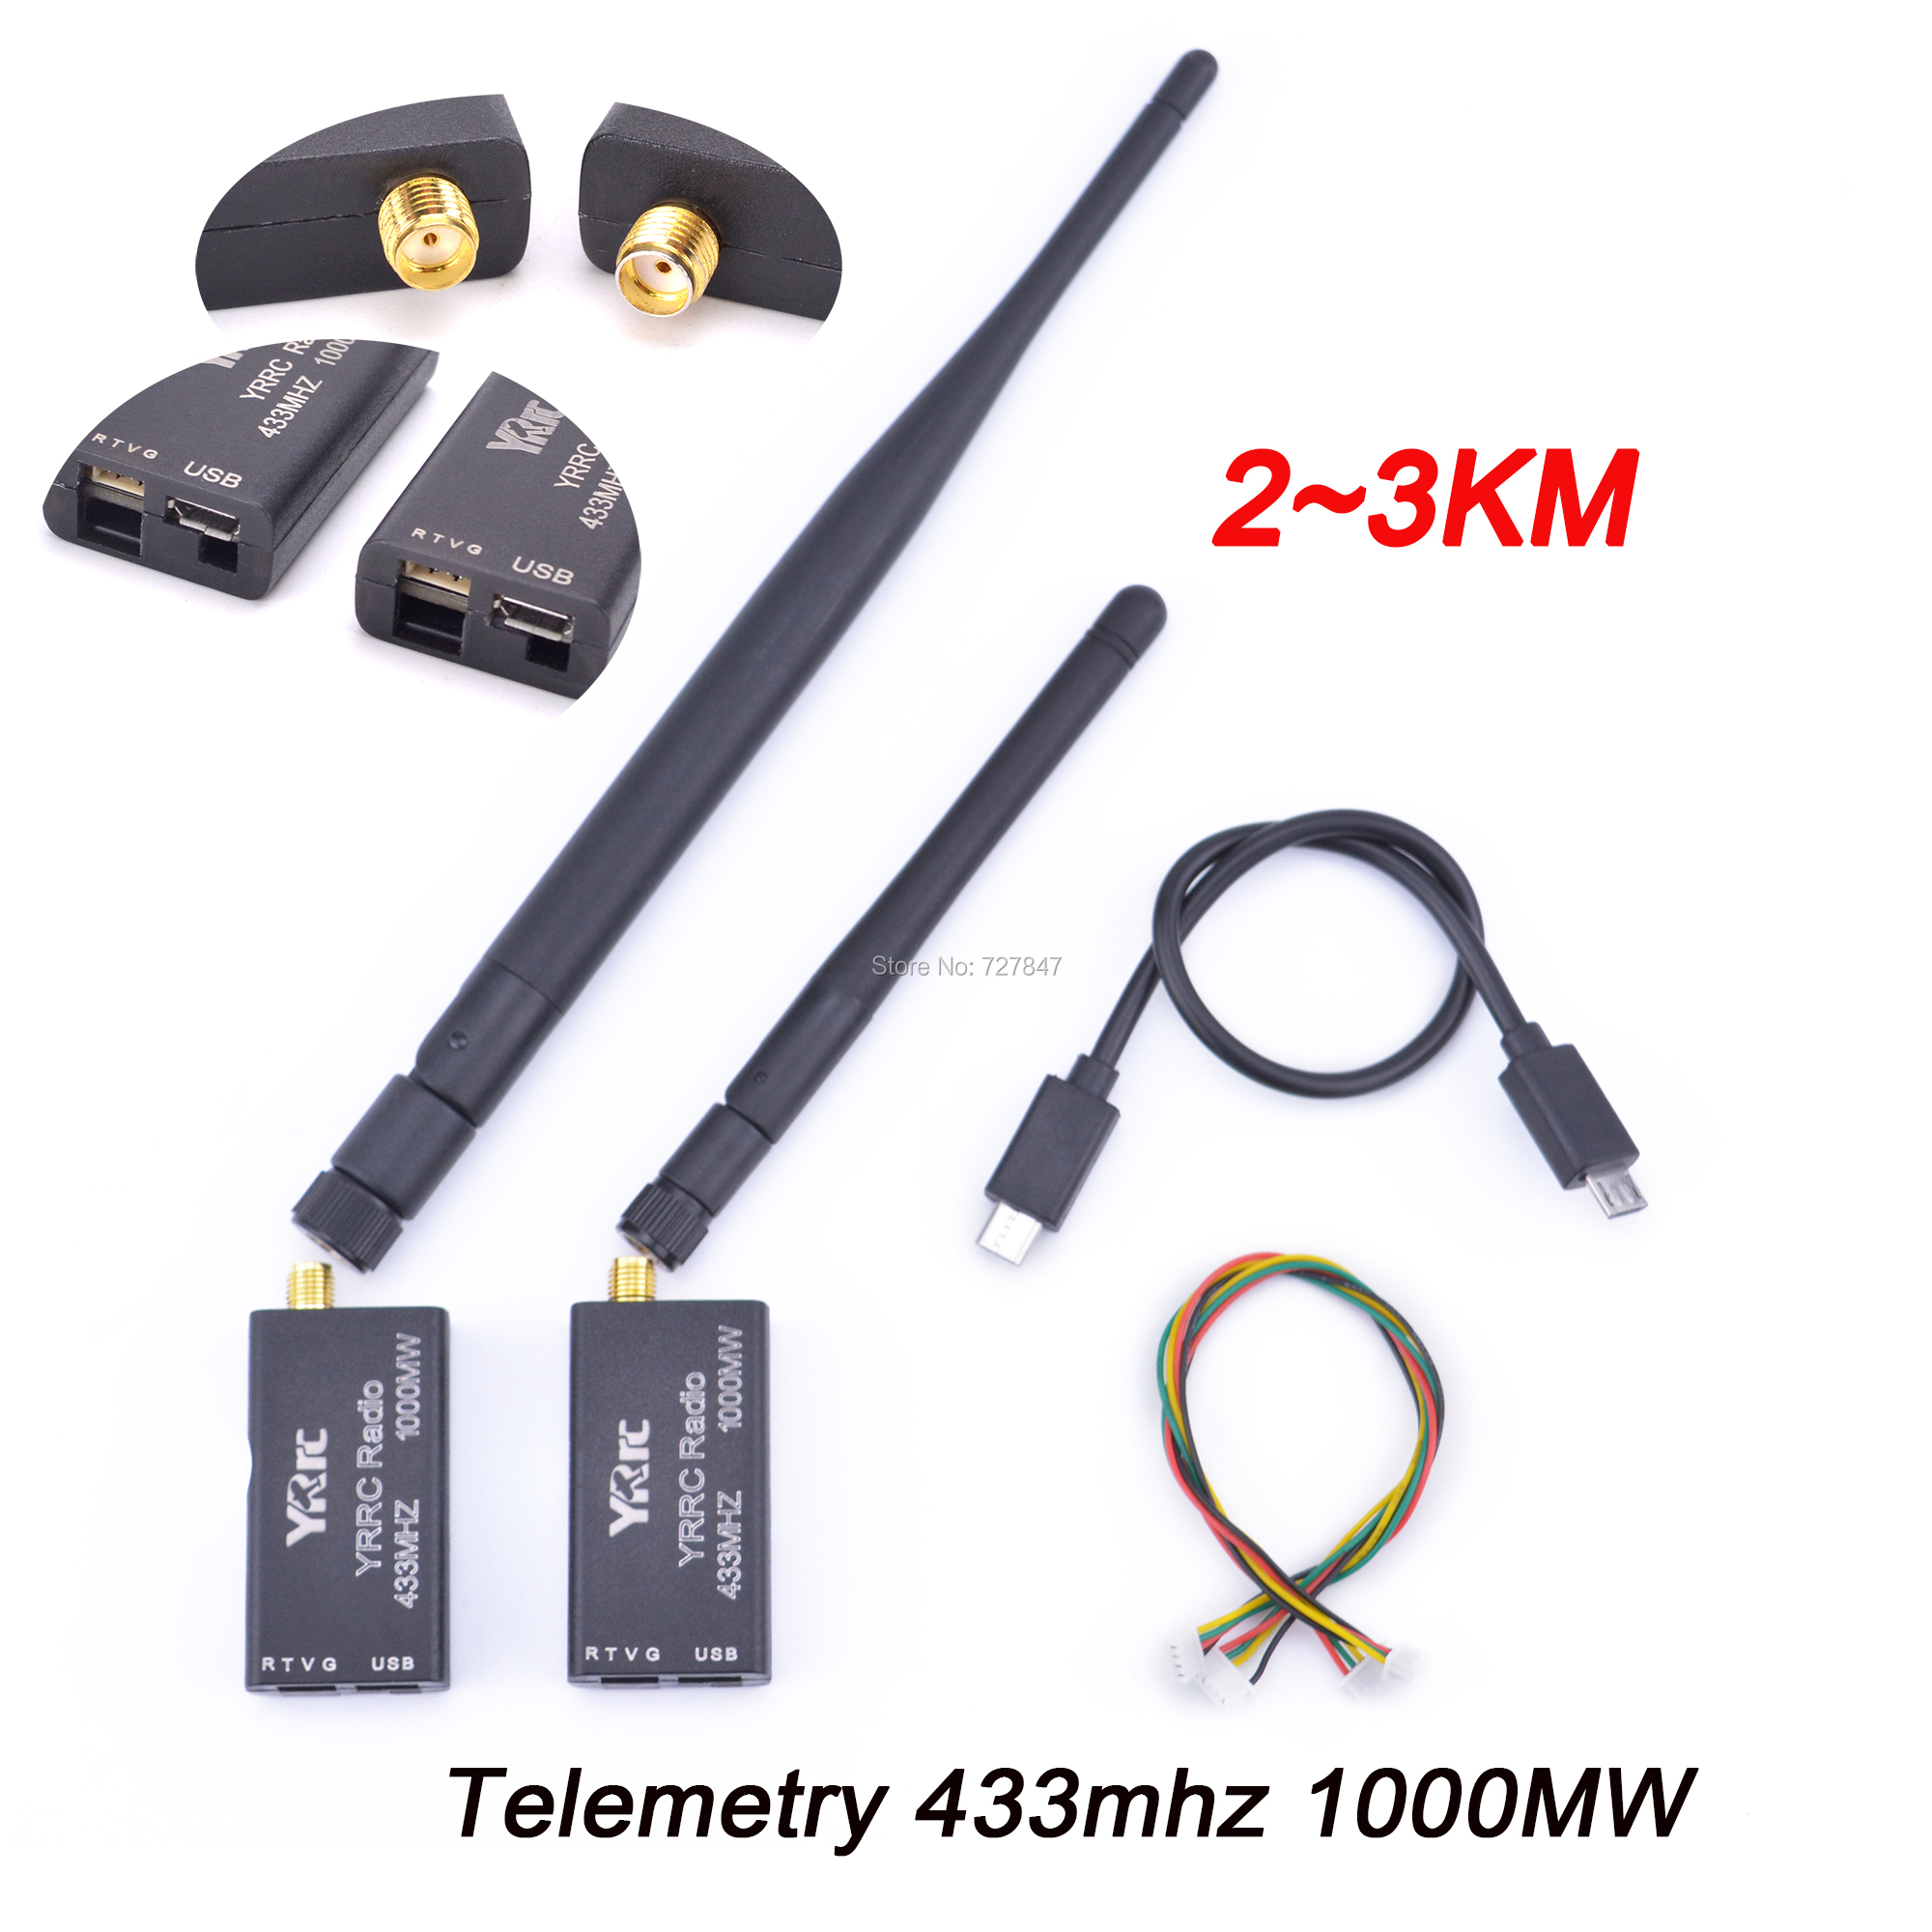 3DR Radio Telemetry 433mhz 433 1000MW 2 3KM Data Telemetry TTL USB Port distance for APM